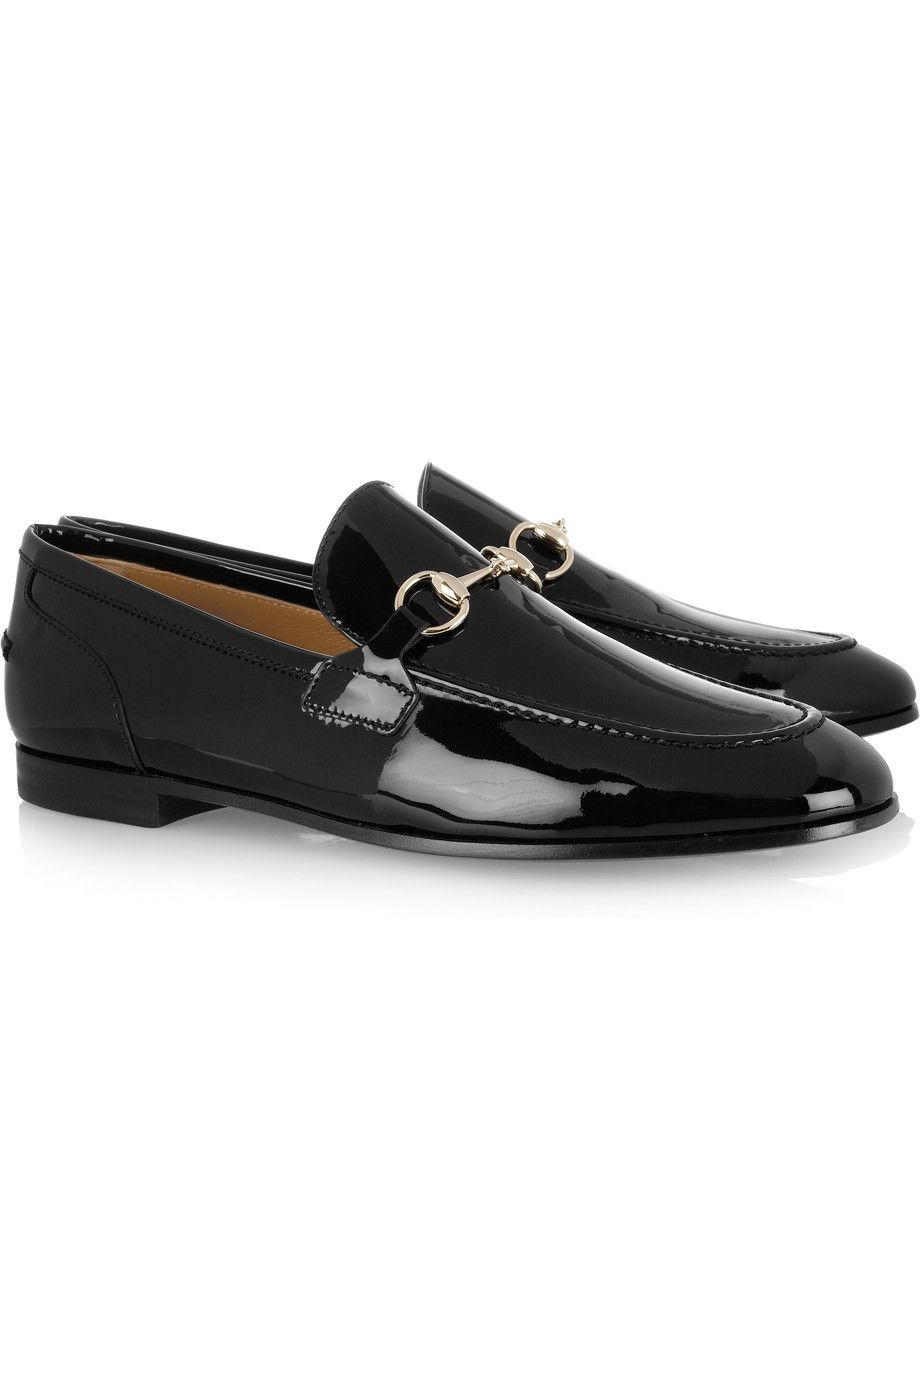 d0e23c4e196 GUCCI Horsebit-detailed patent-leather loafers for women